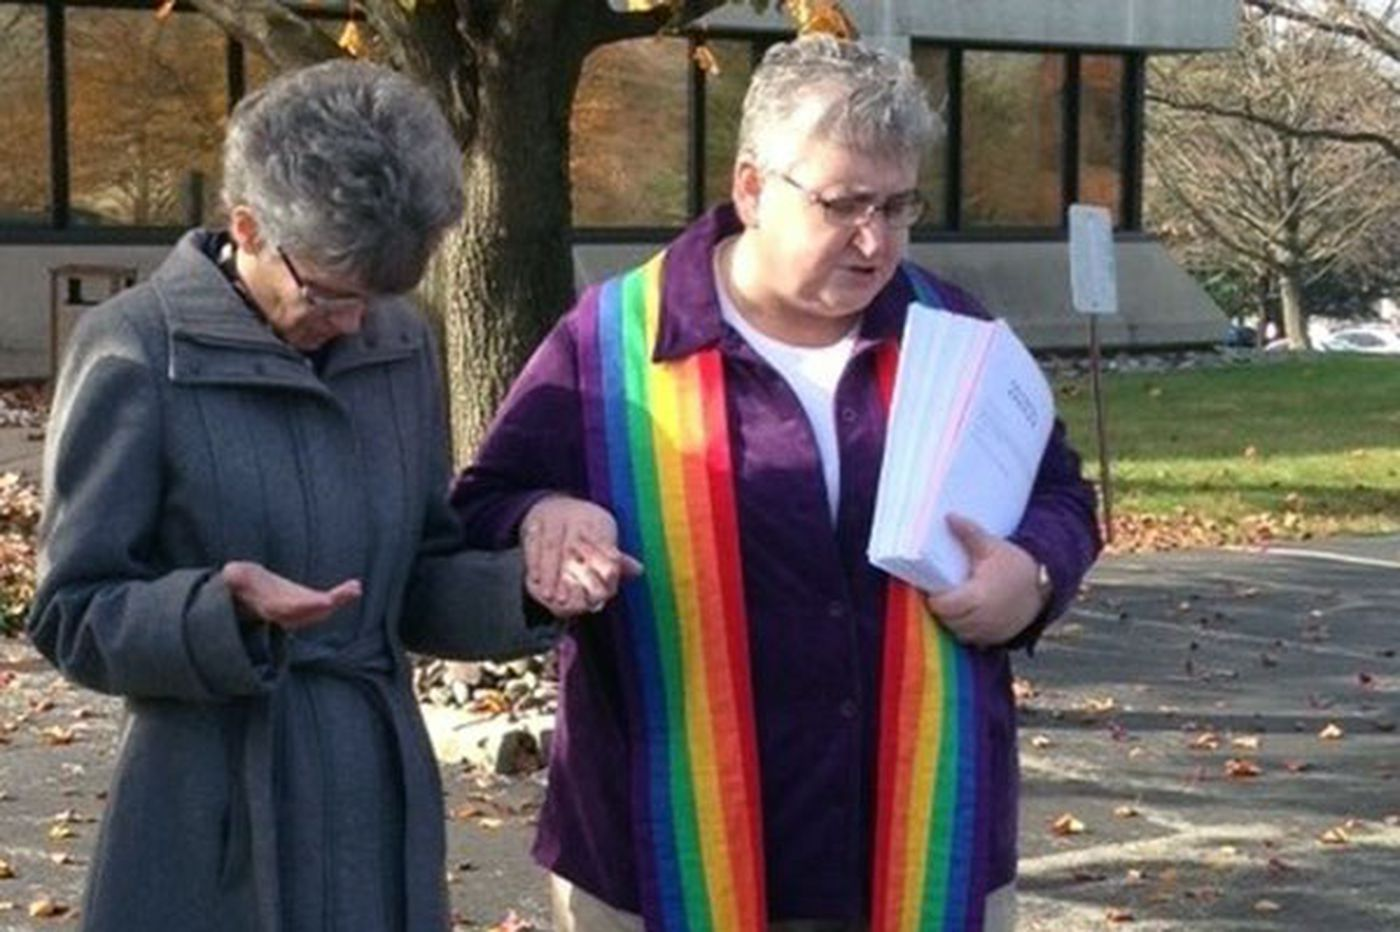 Methodist bishop given gay-rights petition signed by 25,000